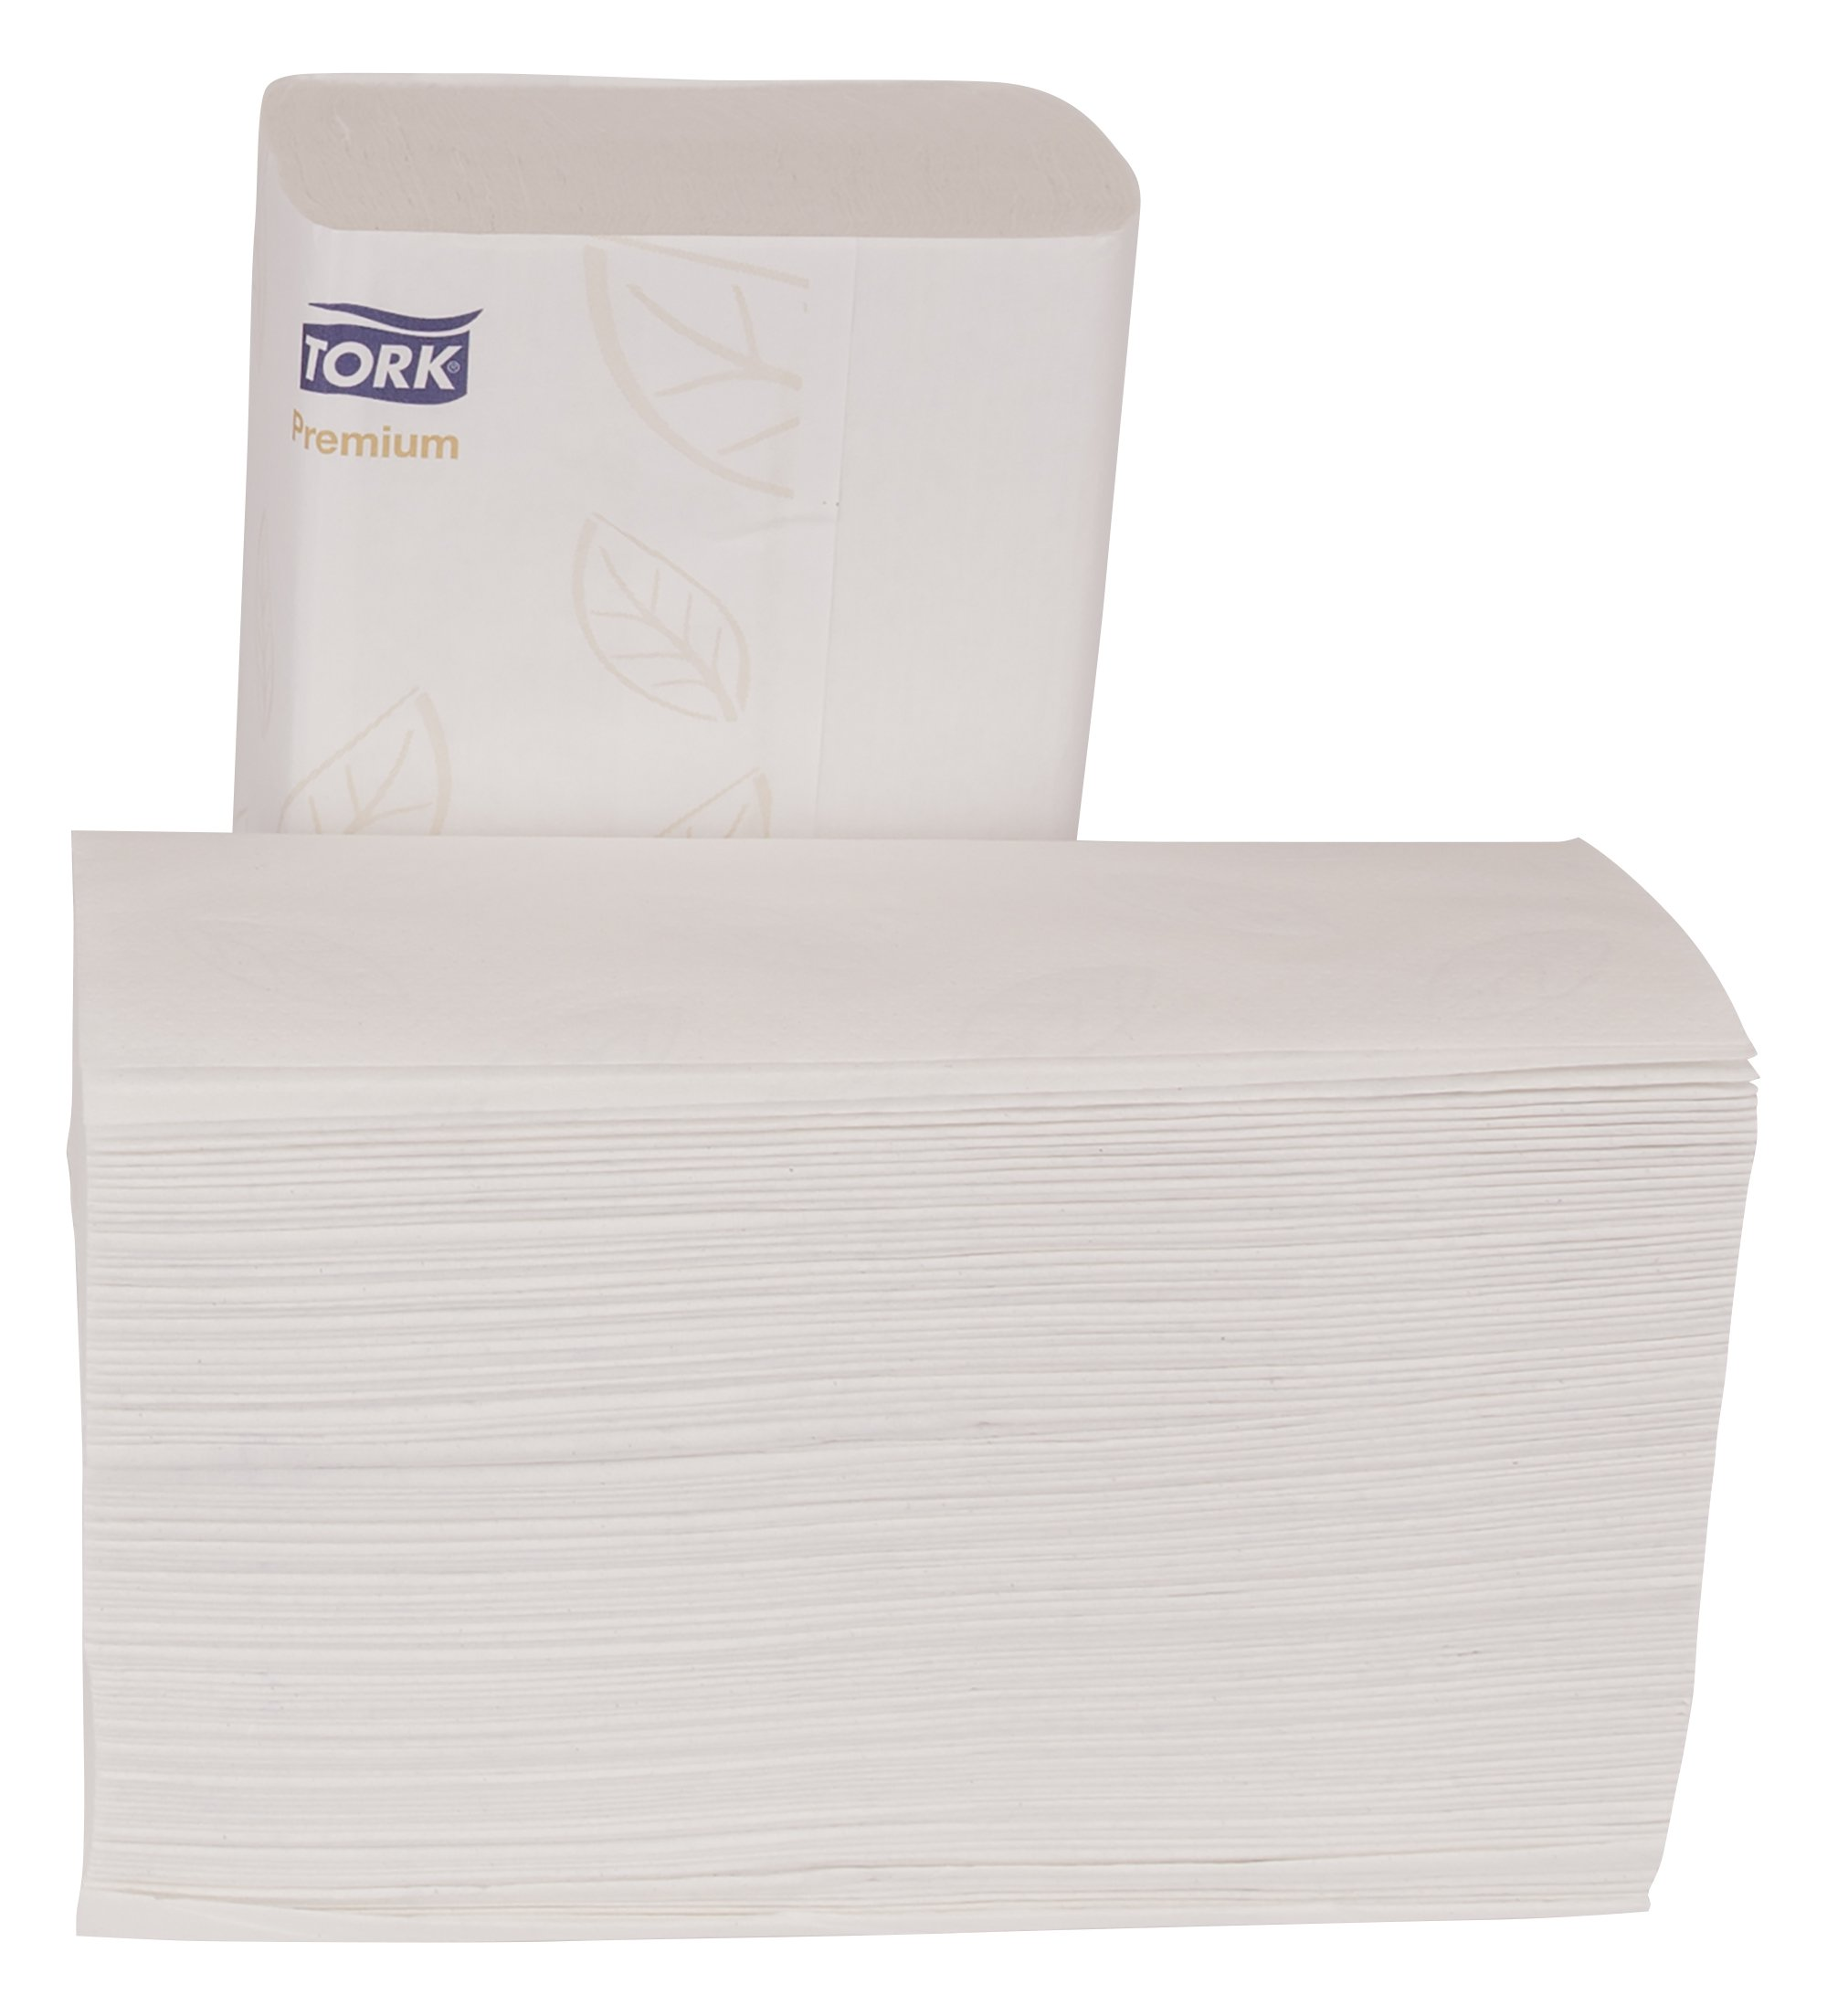 Tork Premium MB572 Soft Xpress Multifold Paper Hand Towel, 4-Panel, 2-Ply, 9.125'' Width x 3.625'' Length, White (Case of 32 Packs, 94 per Pack, 3,008 Towels) by Tork (Image #6)